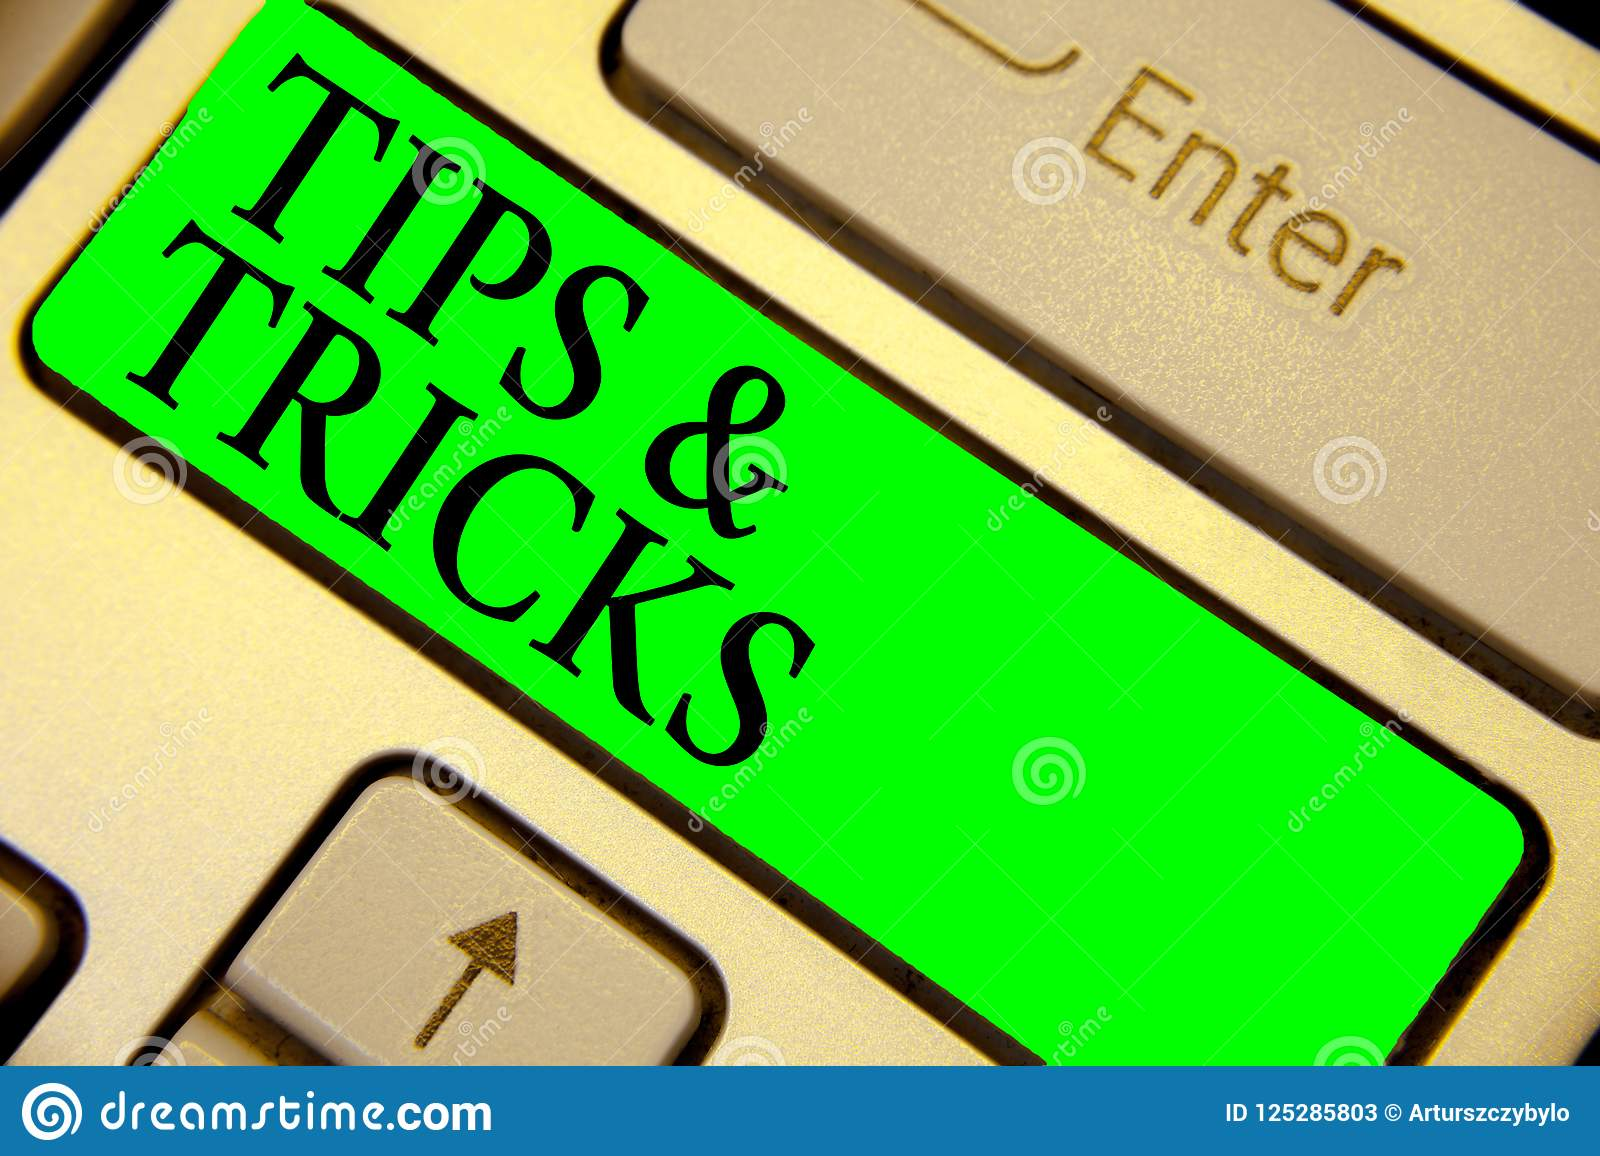 Text sign showing Tips and Tricks. Conceptual photo Steps Lifehacks Handy advice Recommendations Skills Keyboard green key Intenti